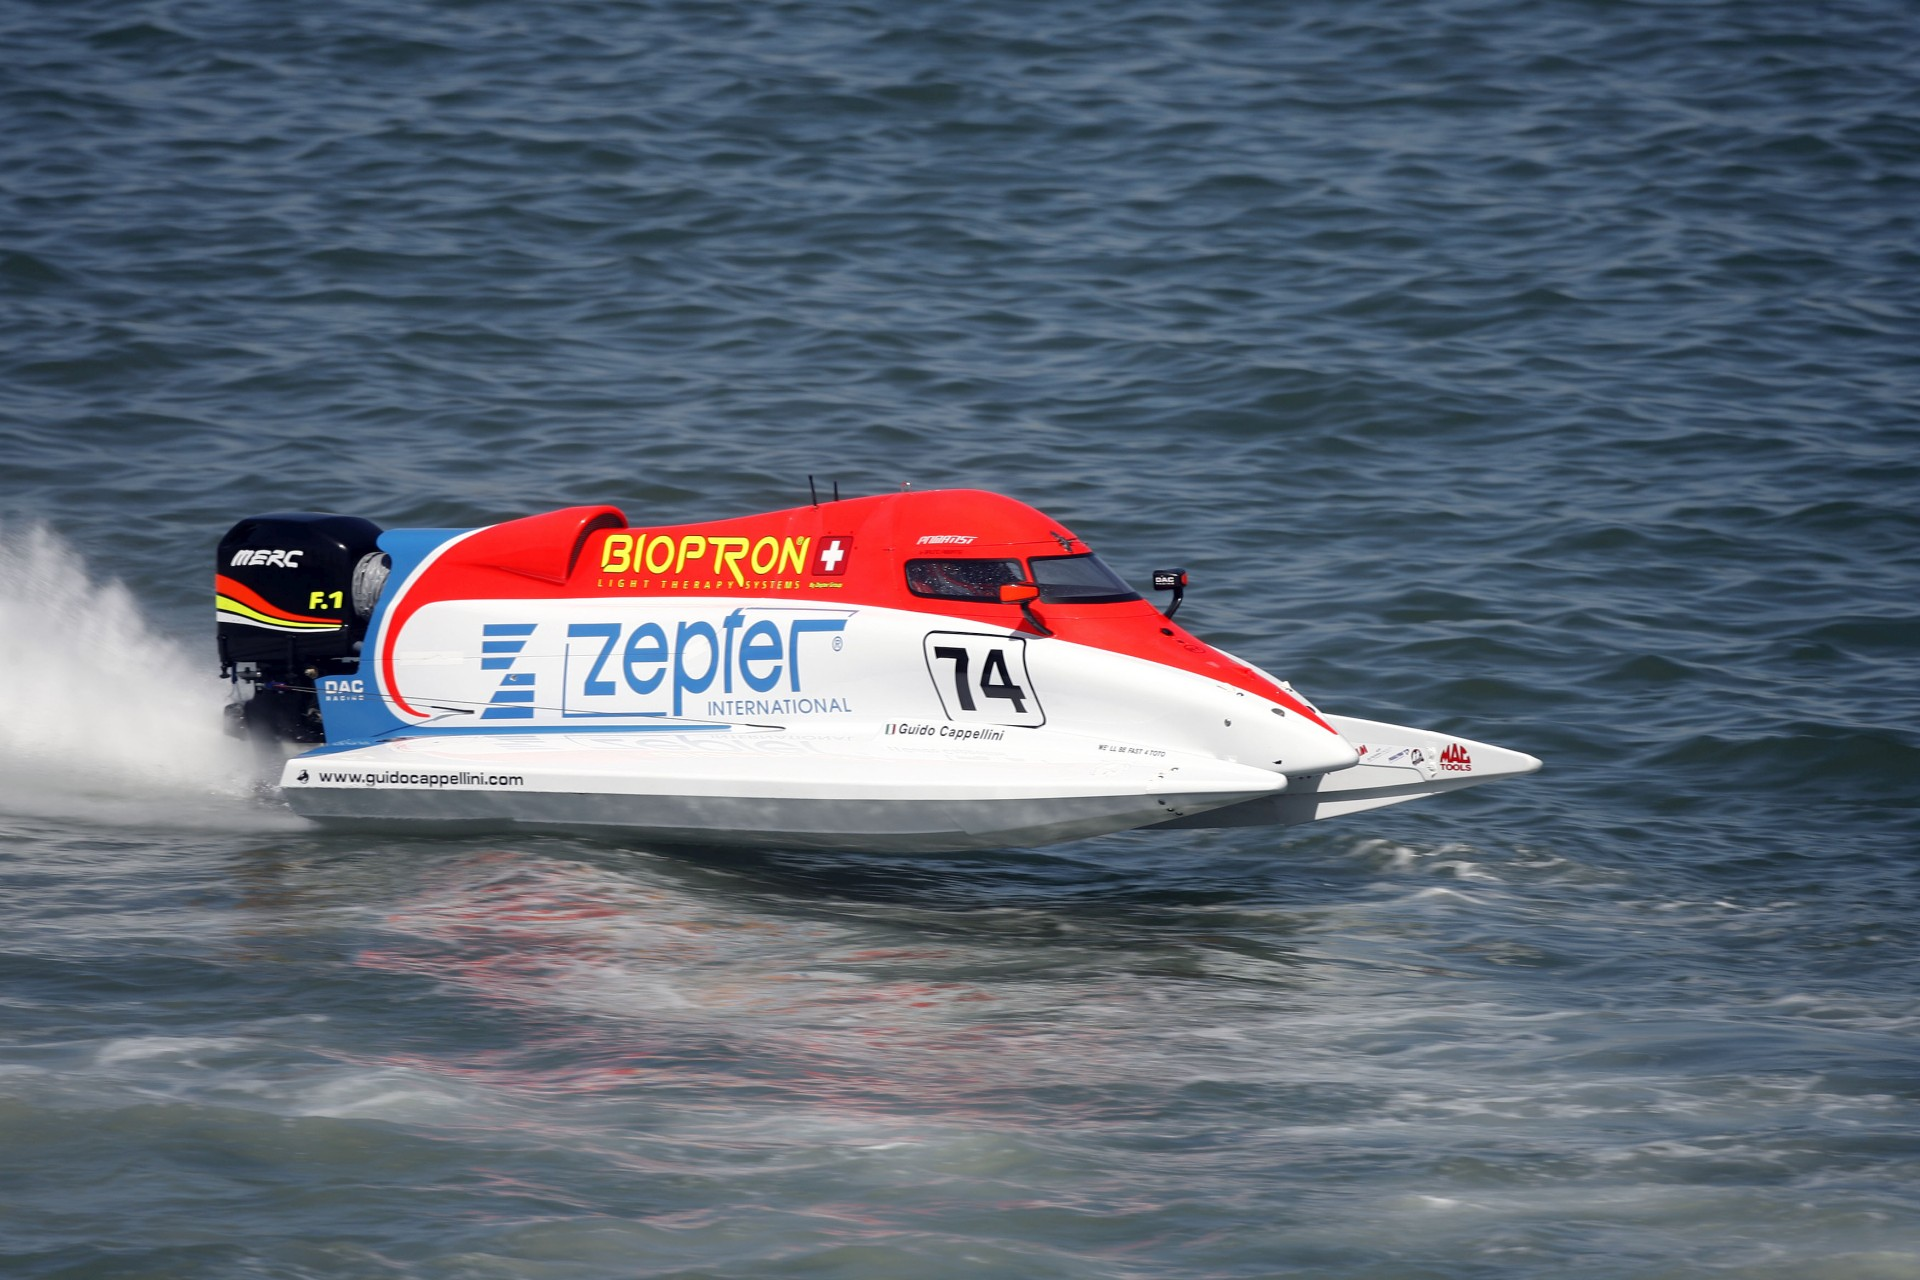 040409-PL-Guido Cappellini of Italy of the Zepter Team in action during the Grand Prix of Portugal, Portimao. The 1st race of the UIM F1 Powerboat Grand Prix season for 2009. Picture by Paul Lakatos/Idea Marketing.